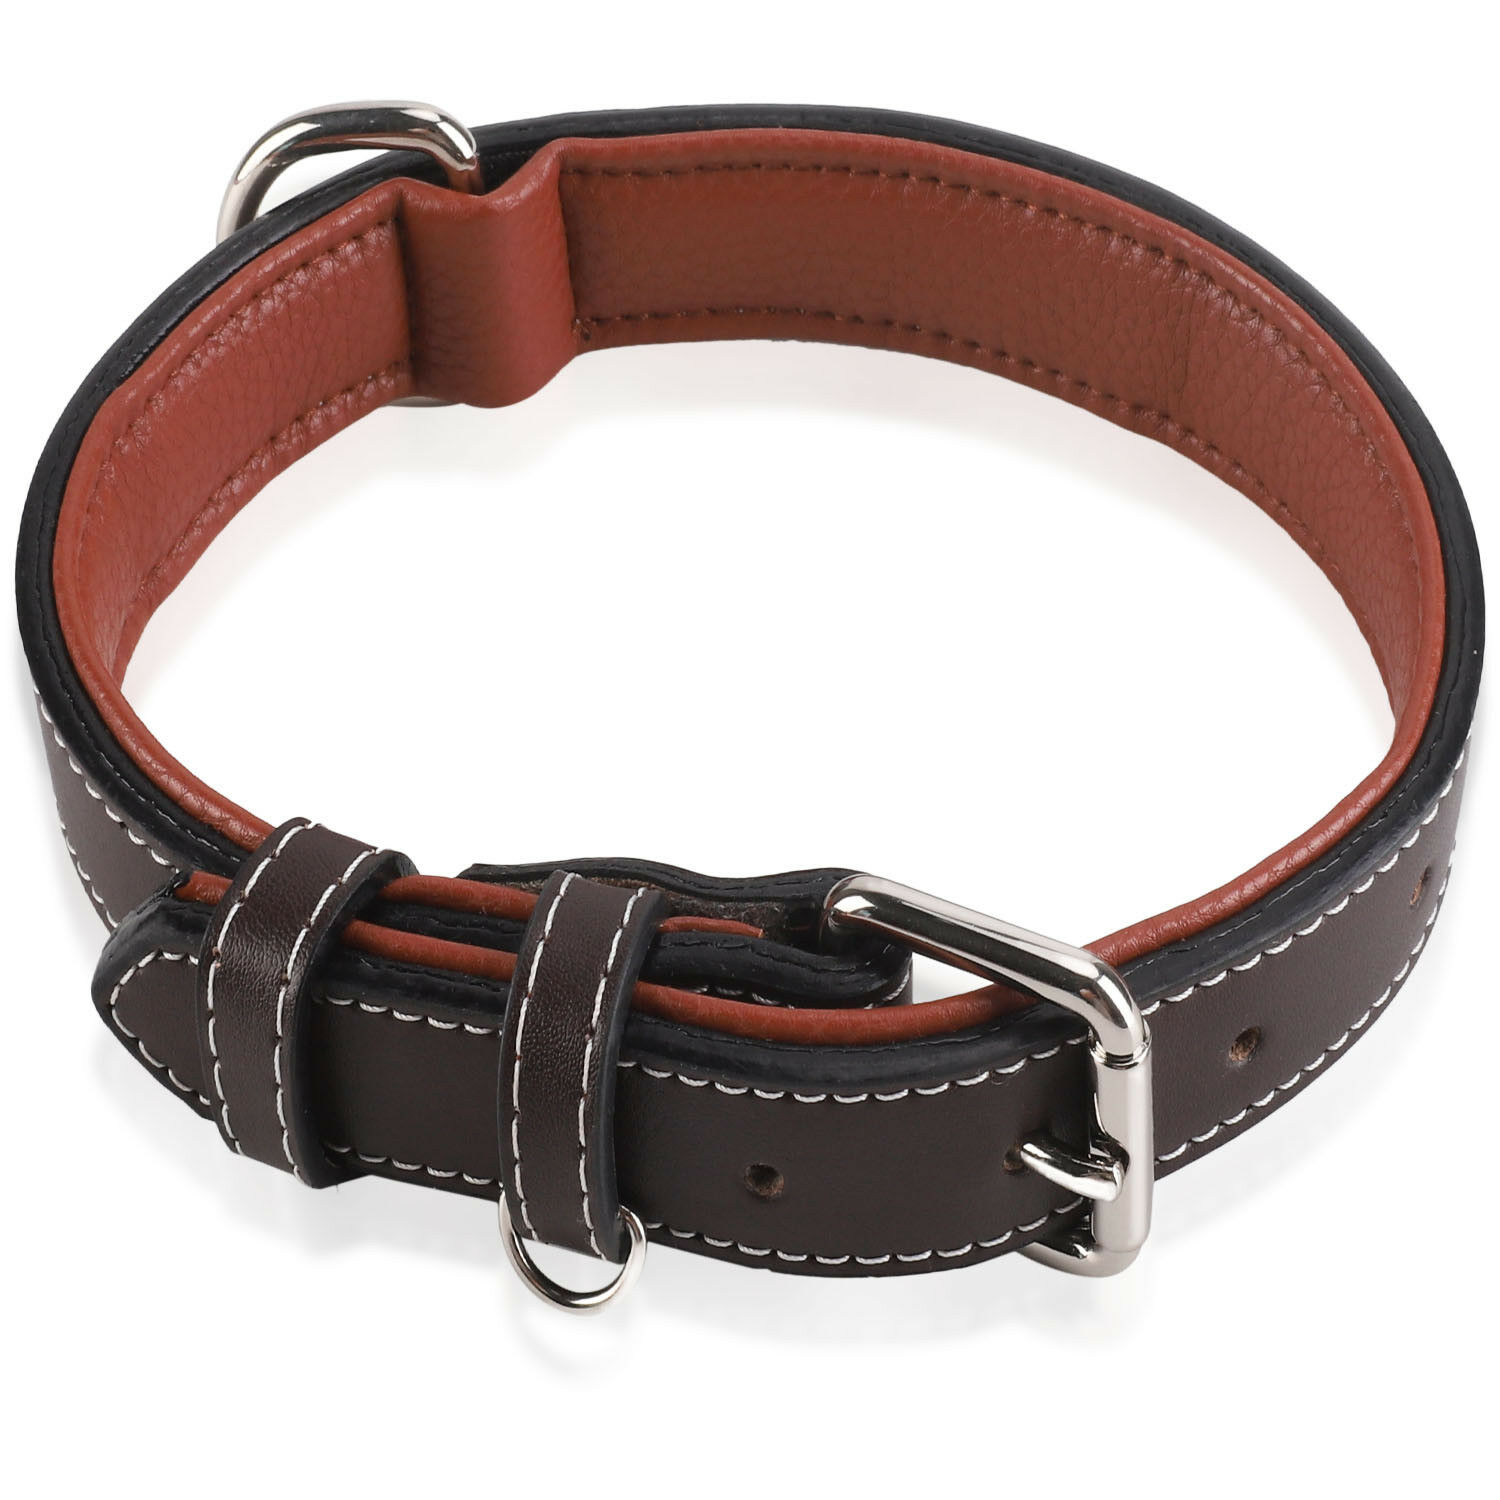 Padded Genuine Leather Dog Collar, Heavy Duty Pet Collars fo